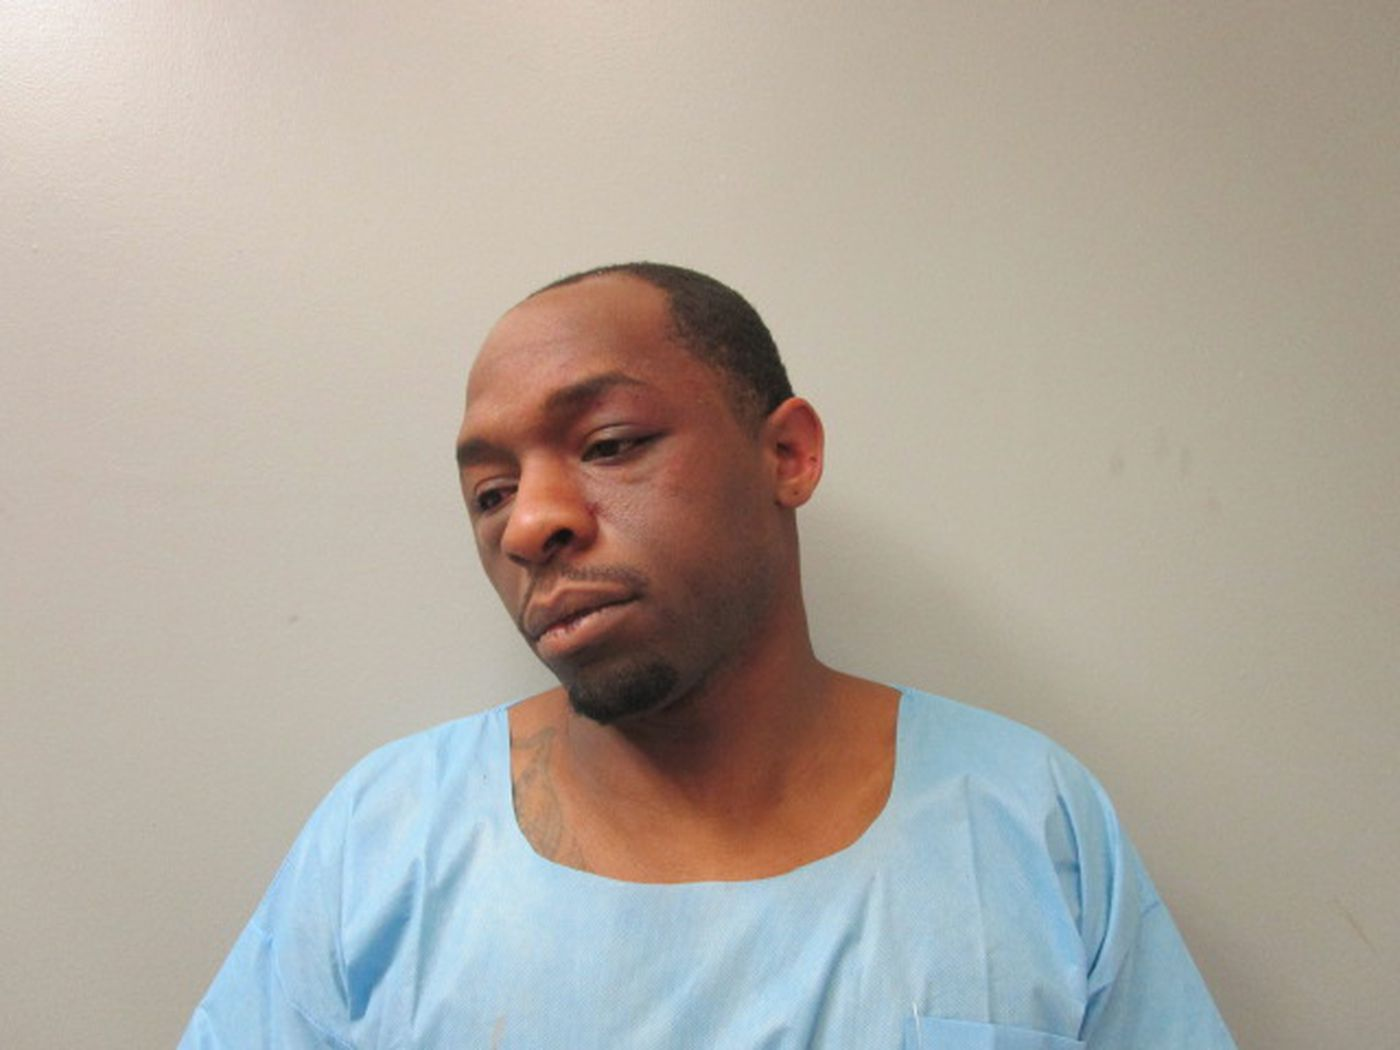 Suspect charged with shooting at police during high-speed pursuit in